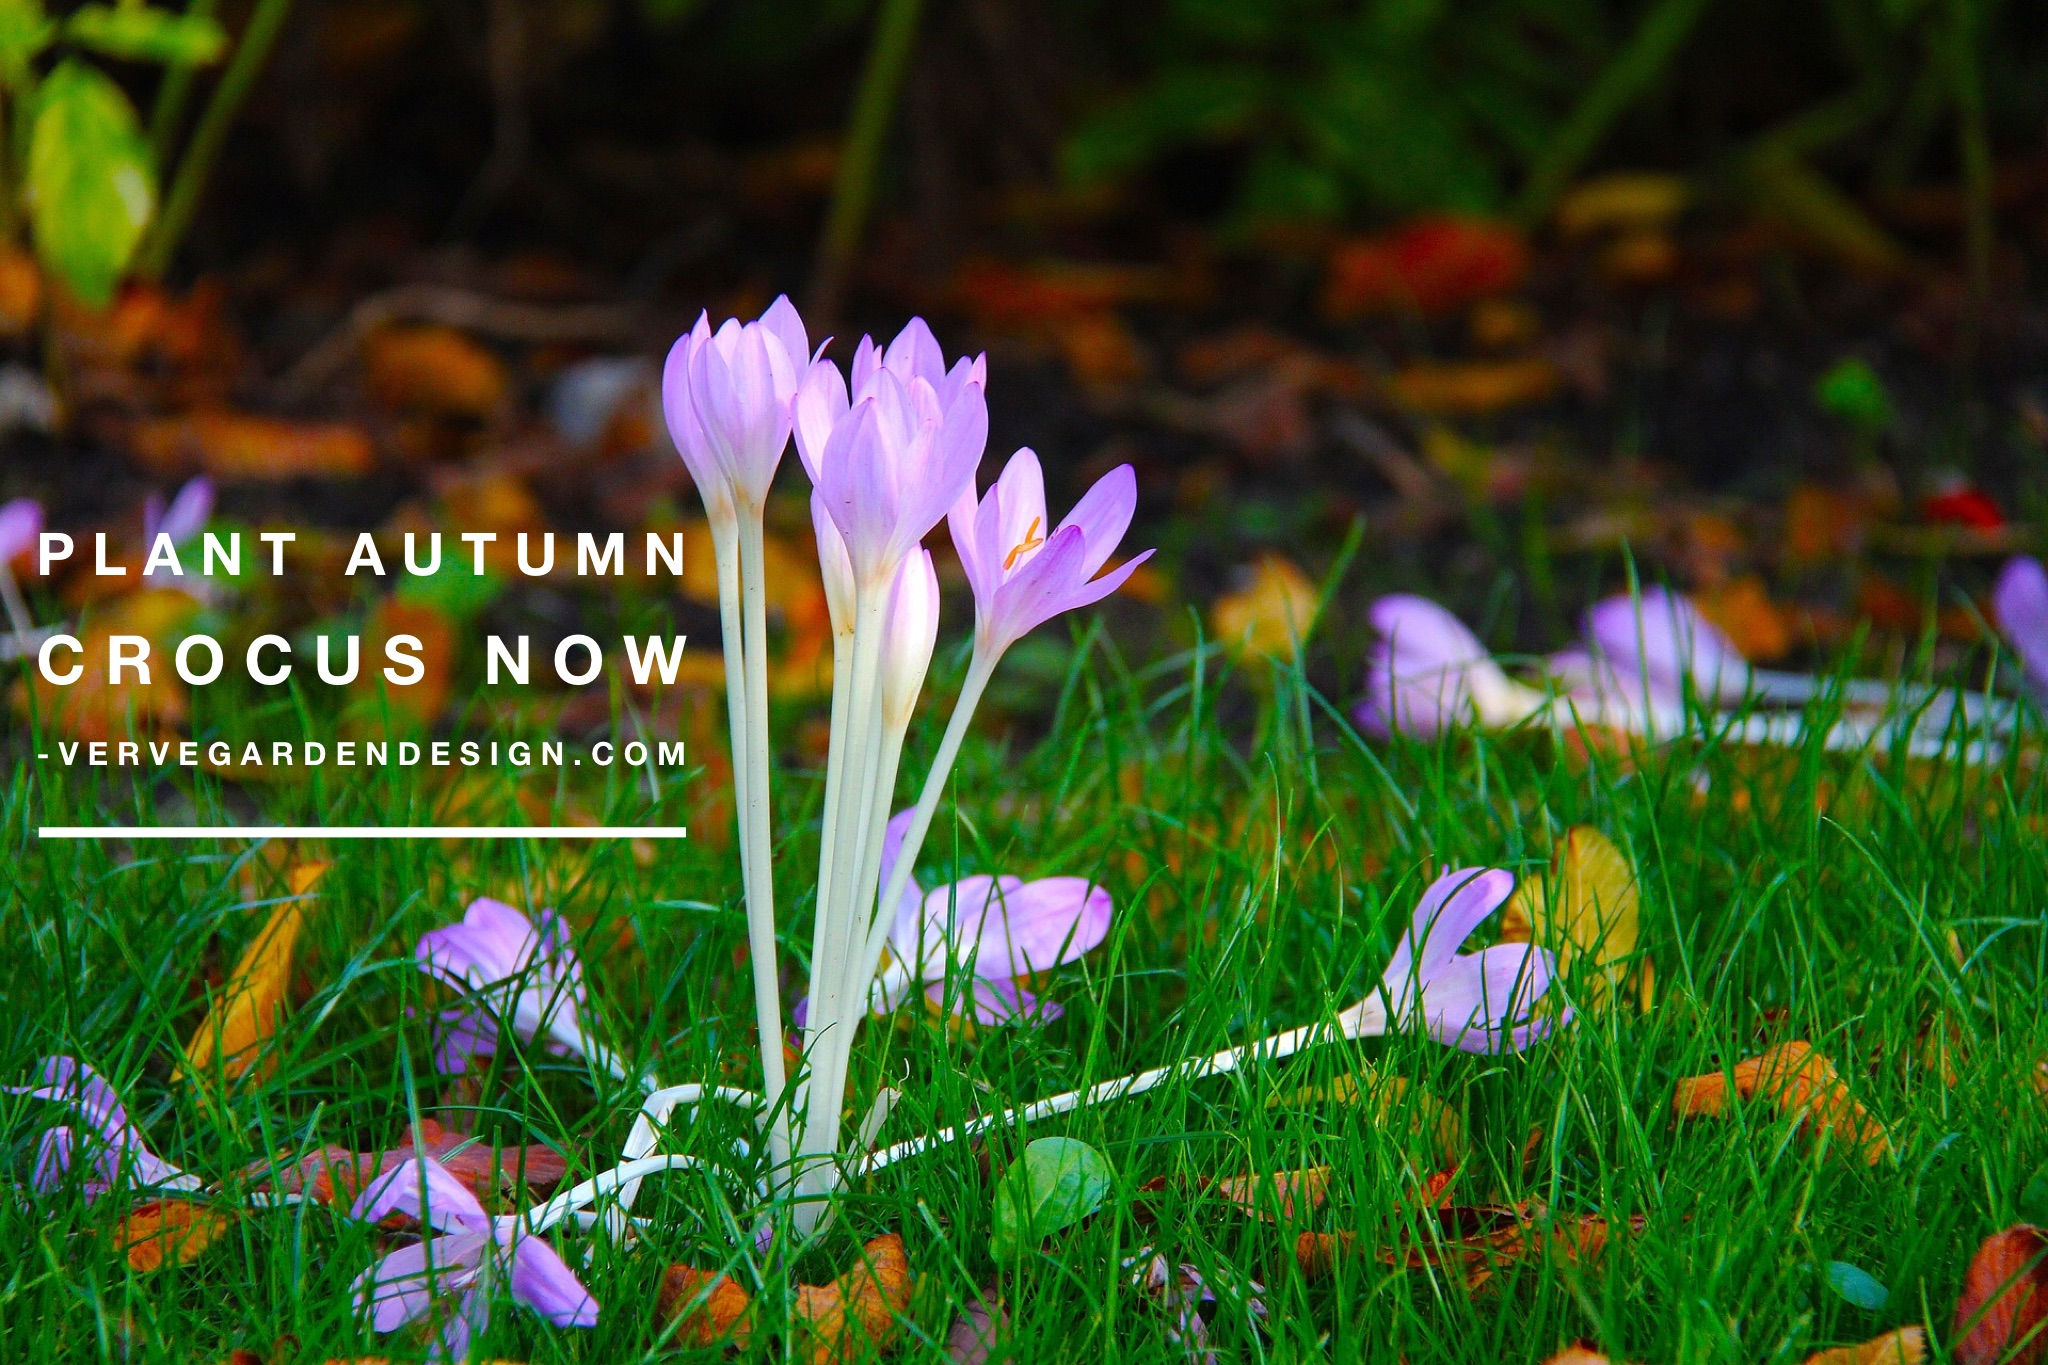 Best planted in lawns or under shrubs, Colchicums add a splash of colour in autumn and feed bees